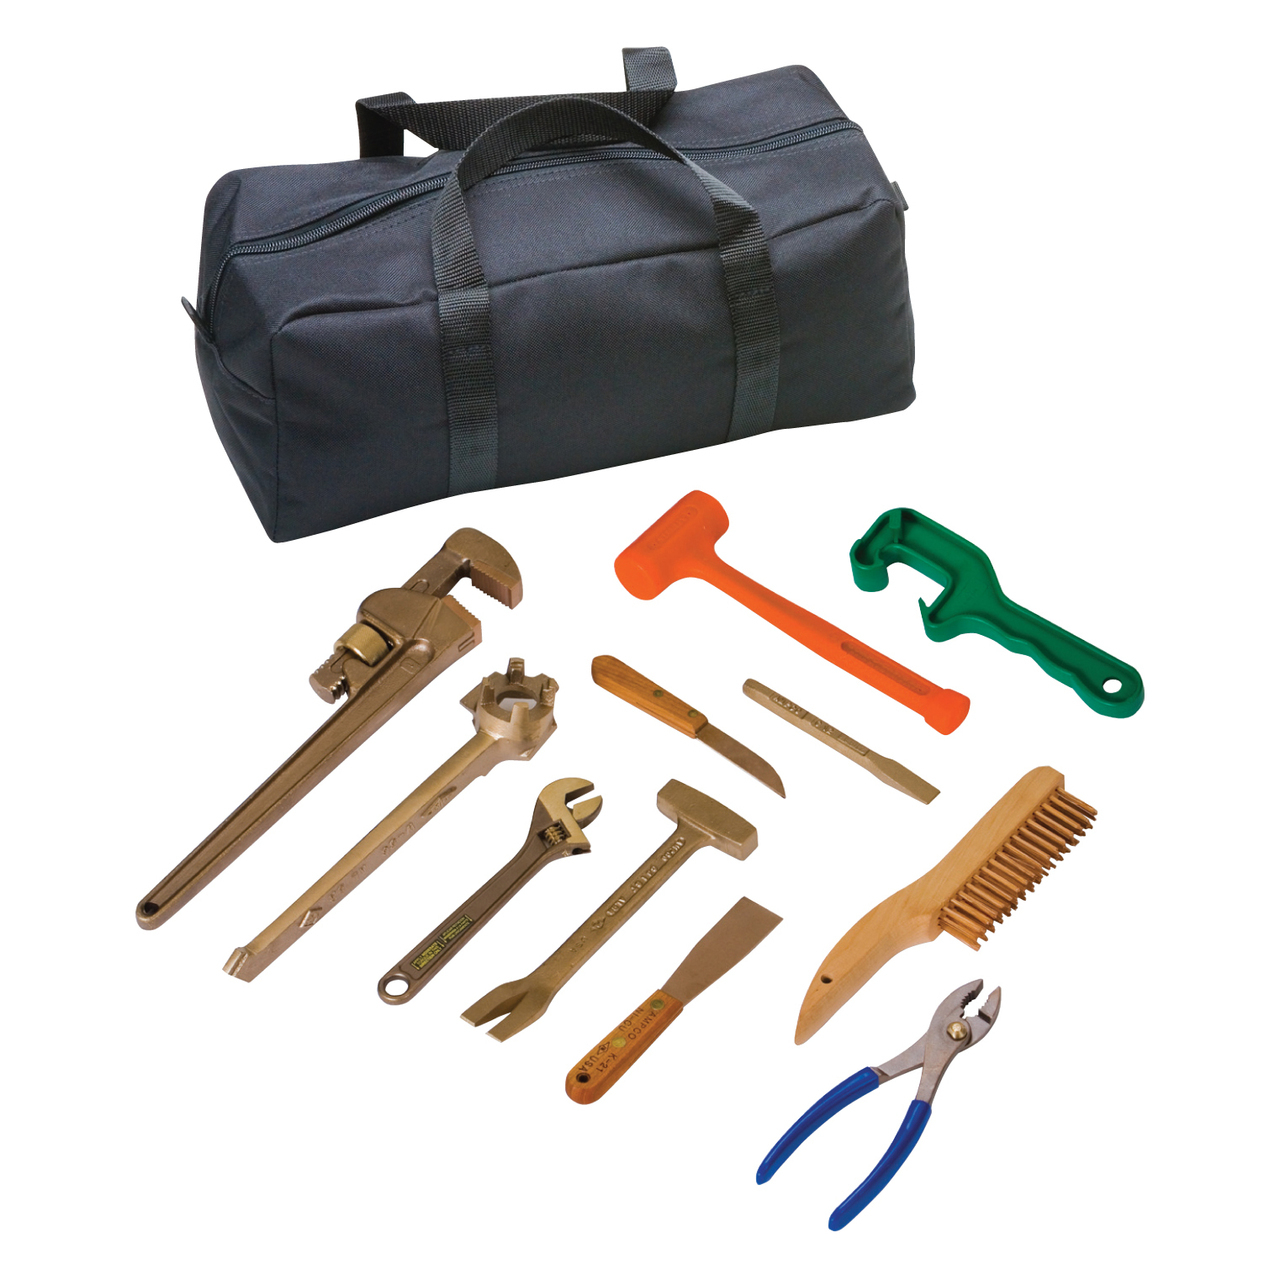 Shop Non-Sparking Tools at DQE